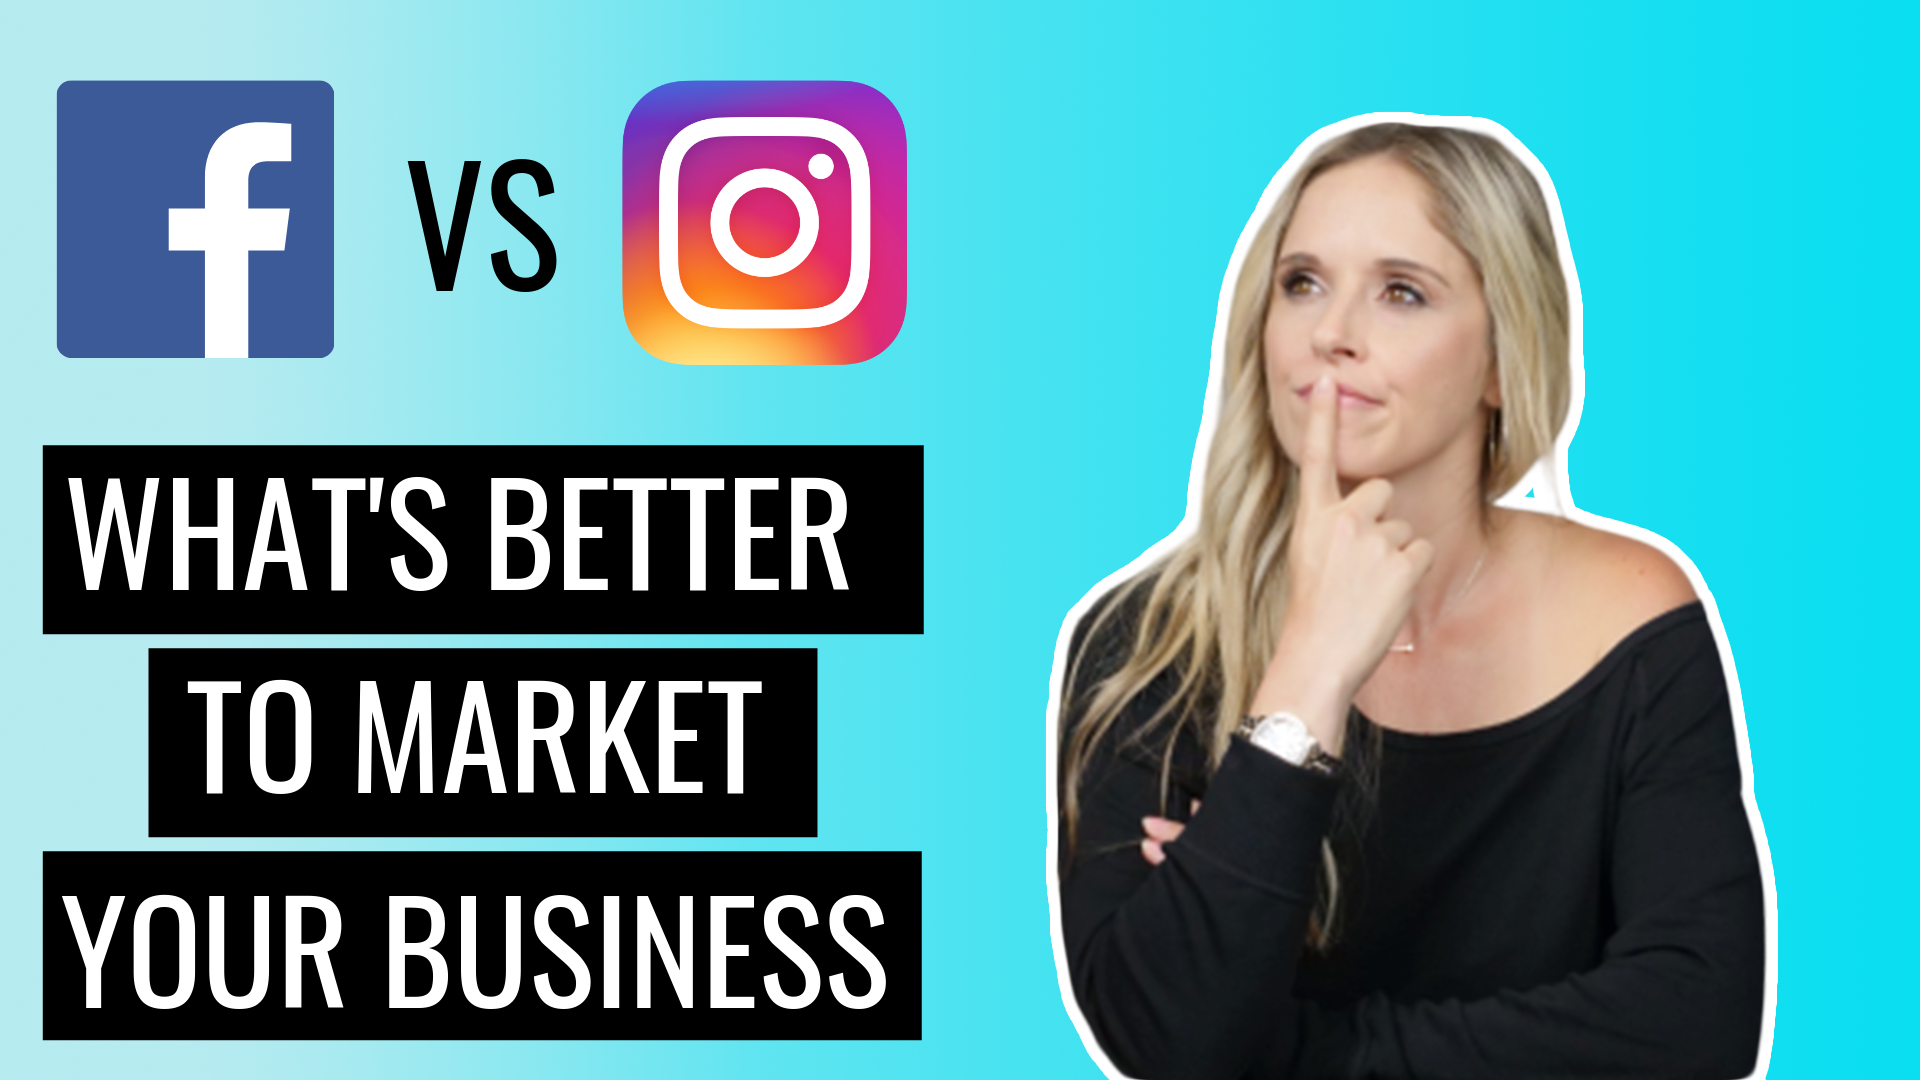 Facebook vs Instagram, What's Better to Market Your Business?